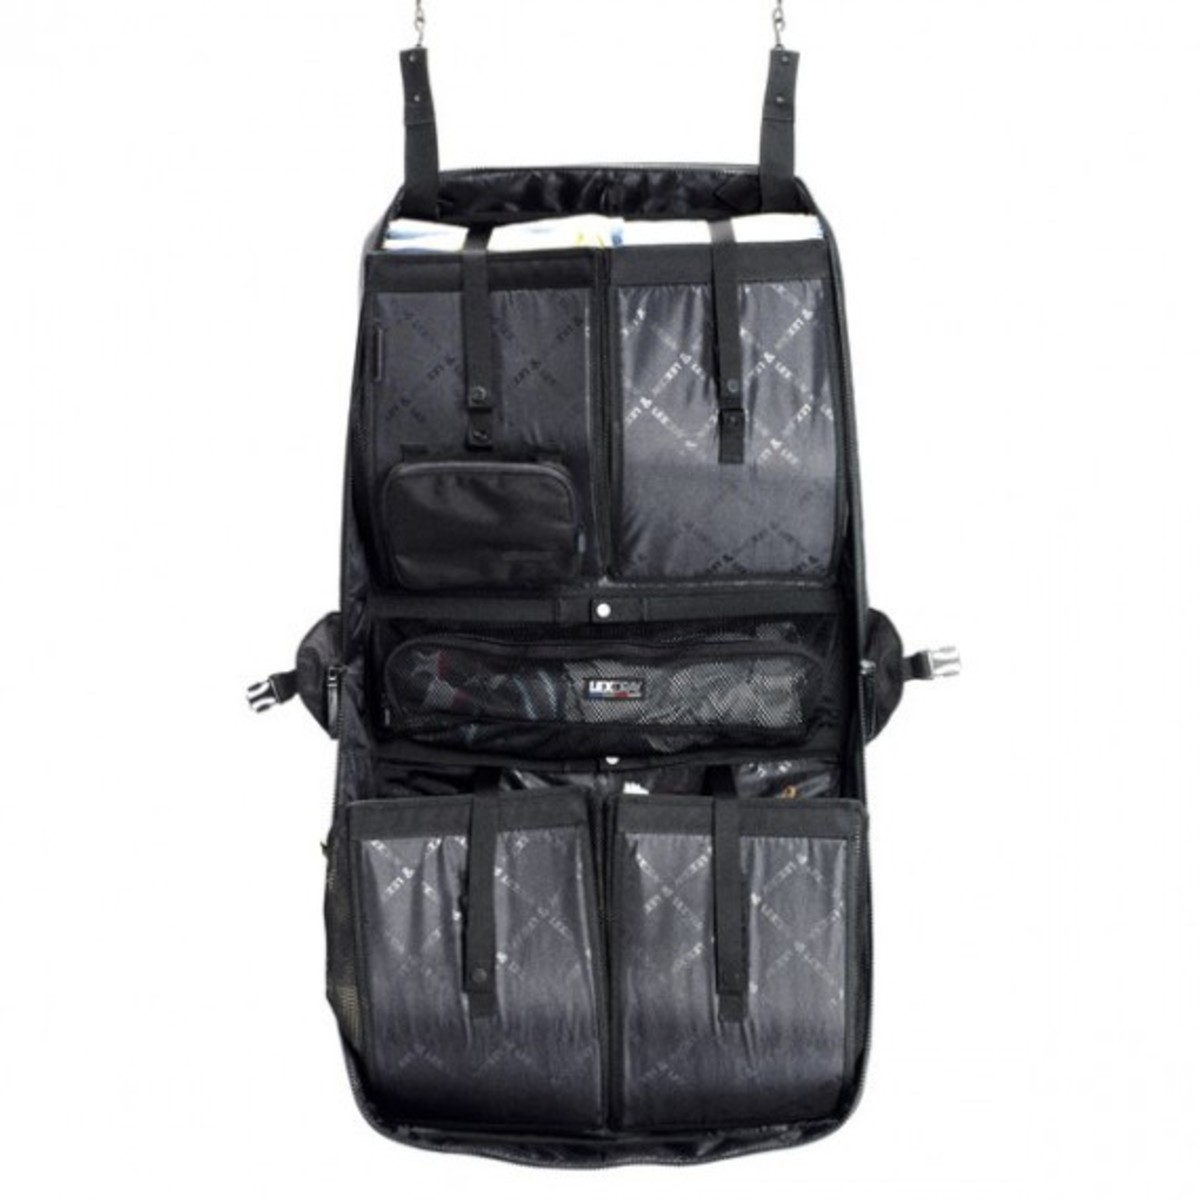 lexdray-london-garment-bag-5